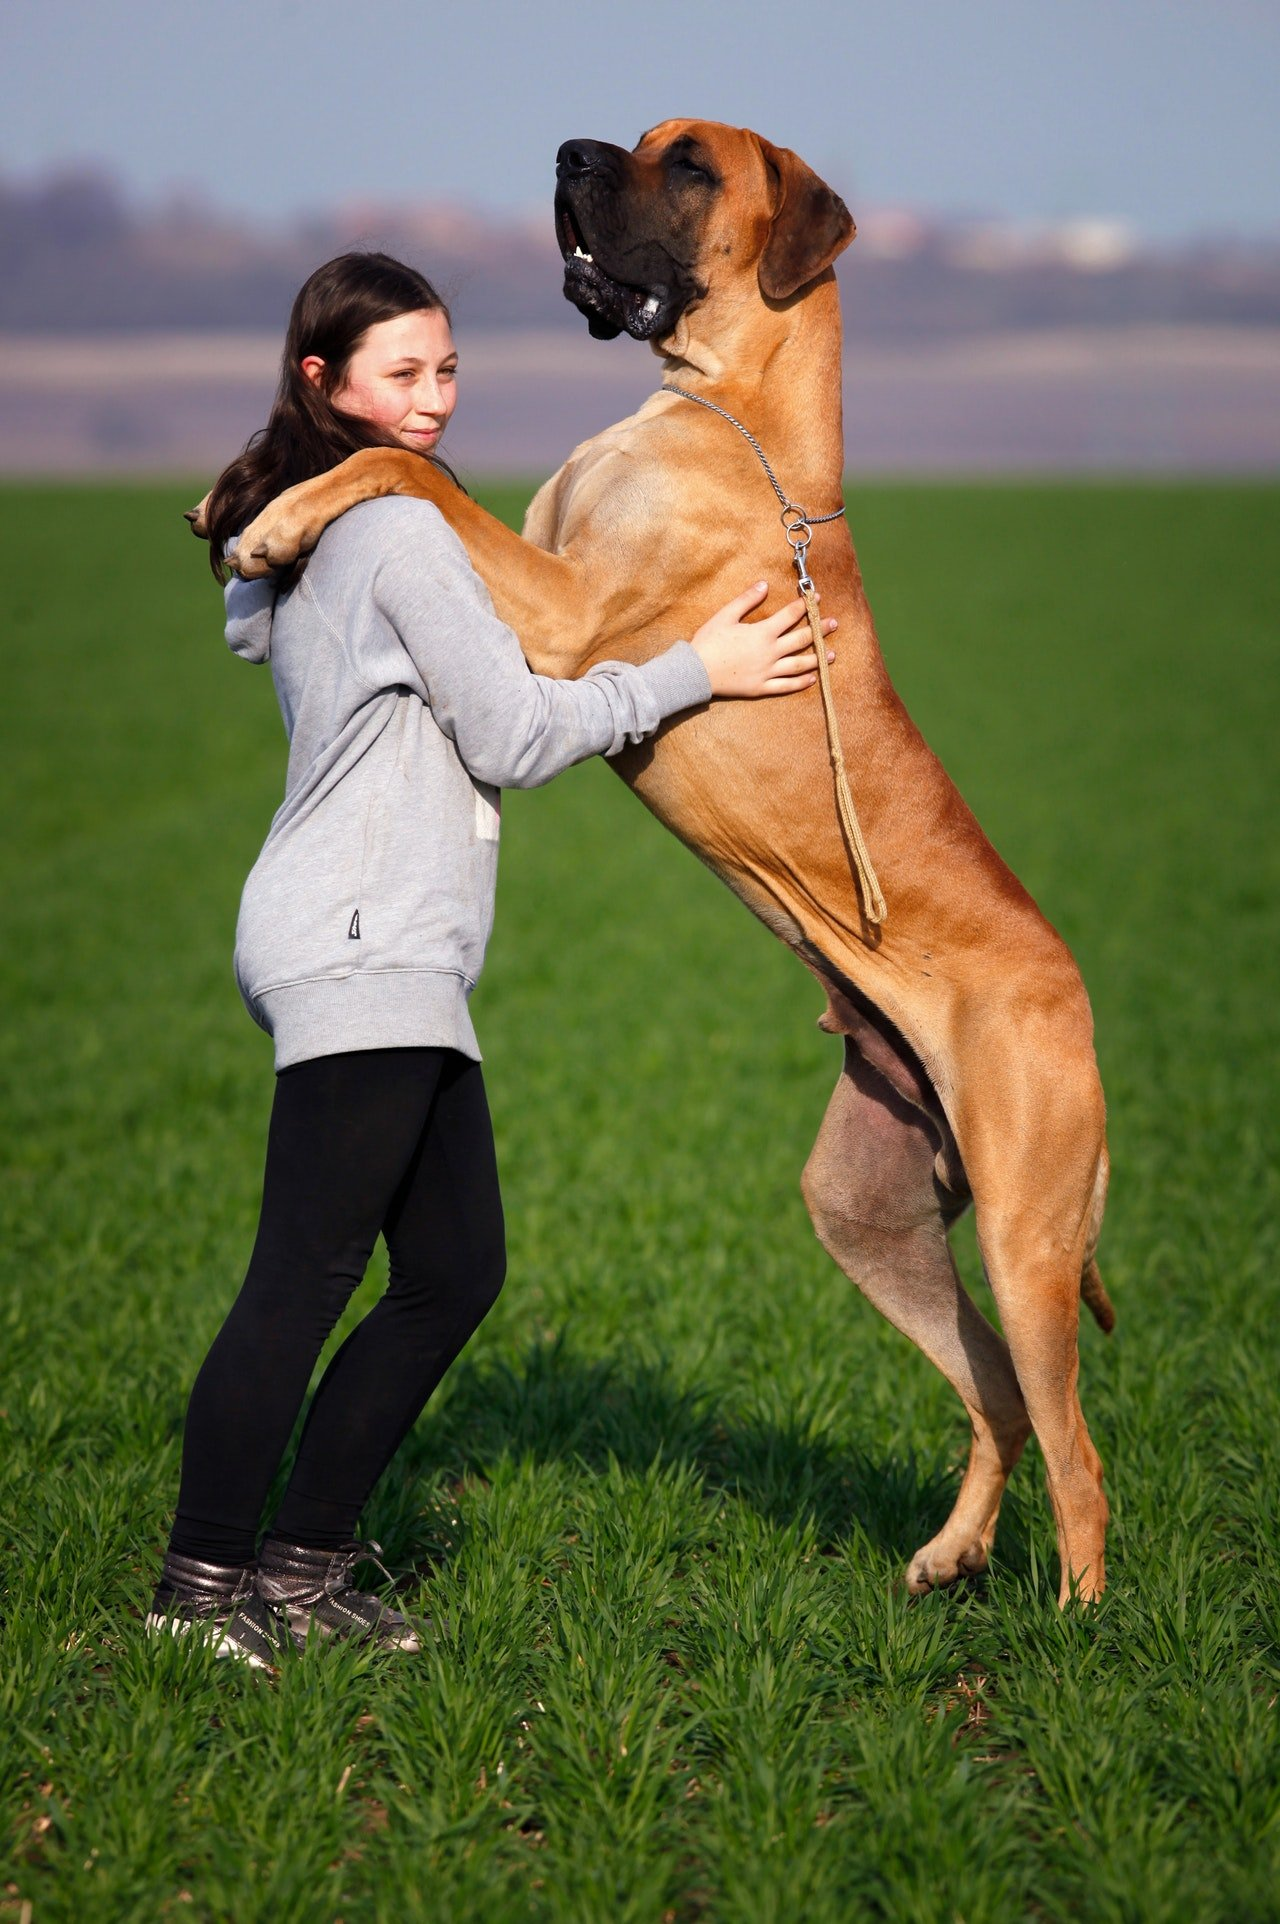 Find your own huge dog breed.